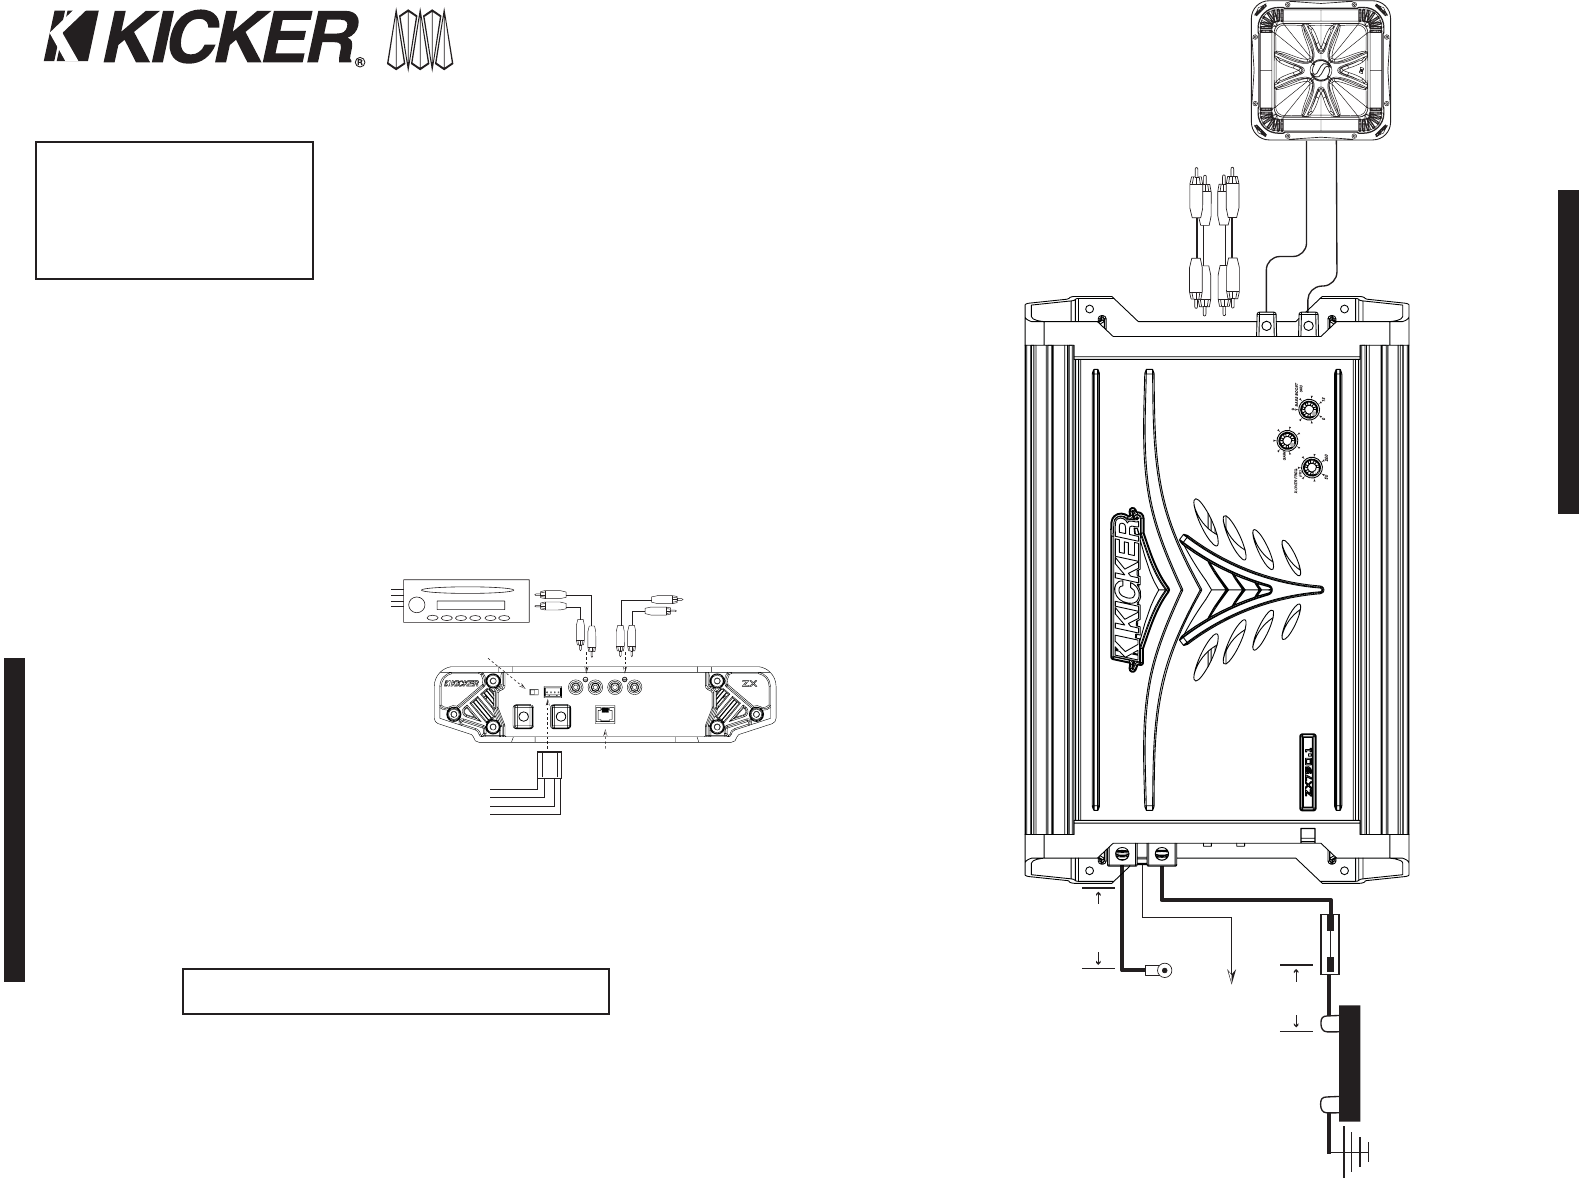 52b01e54 9f83 4566 bf8f 2f821065ce6f bg2 page 2 of kicker stereo amplifier zx400 1 user guide Kicker Cx300.1 at edmiracle.co